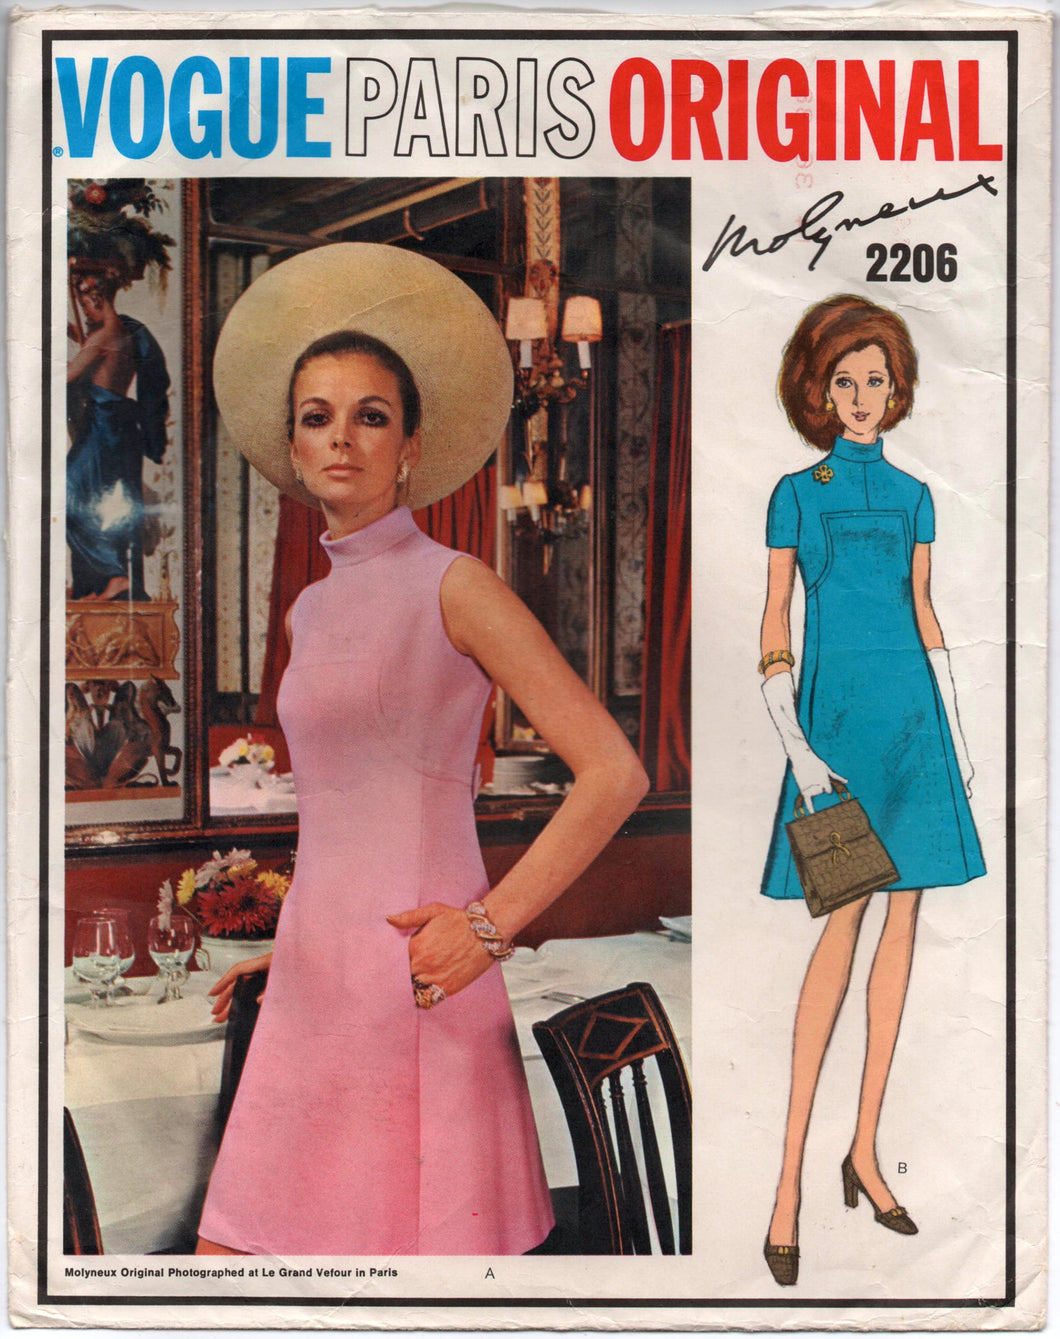 1960's Vogue Paris Original One-Piece Mod Dress Pattern - UC/FF - MOLYNEAUX - Bust 36